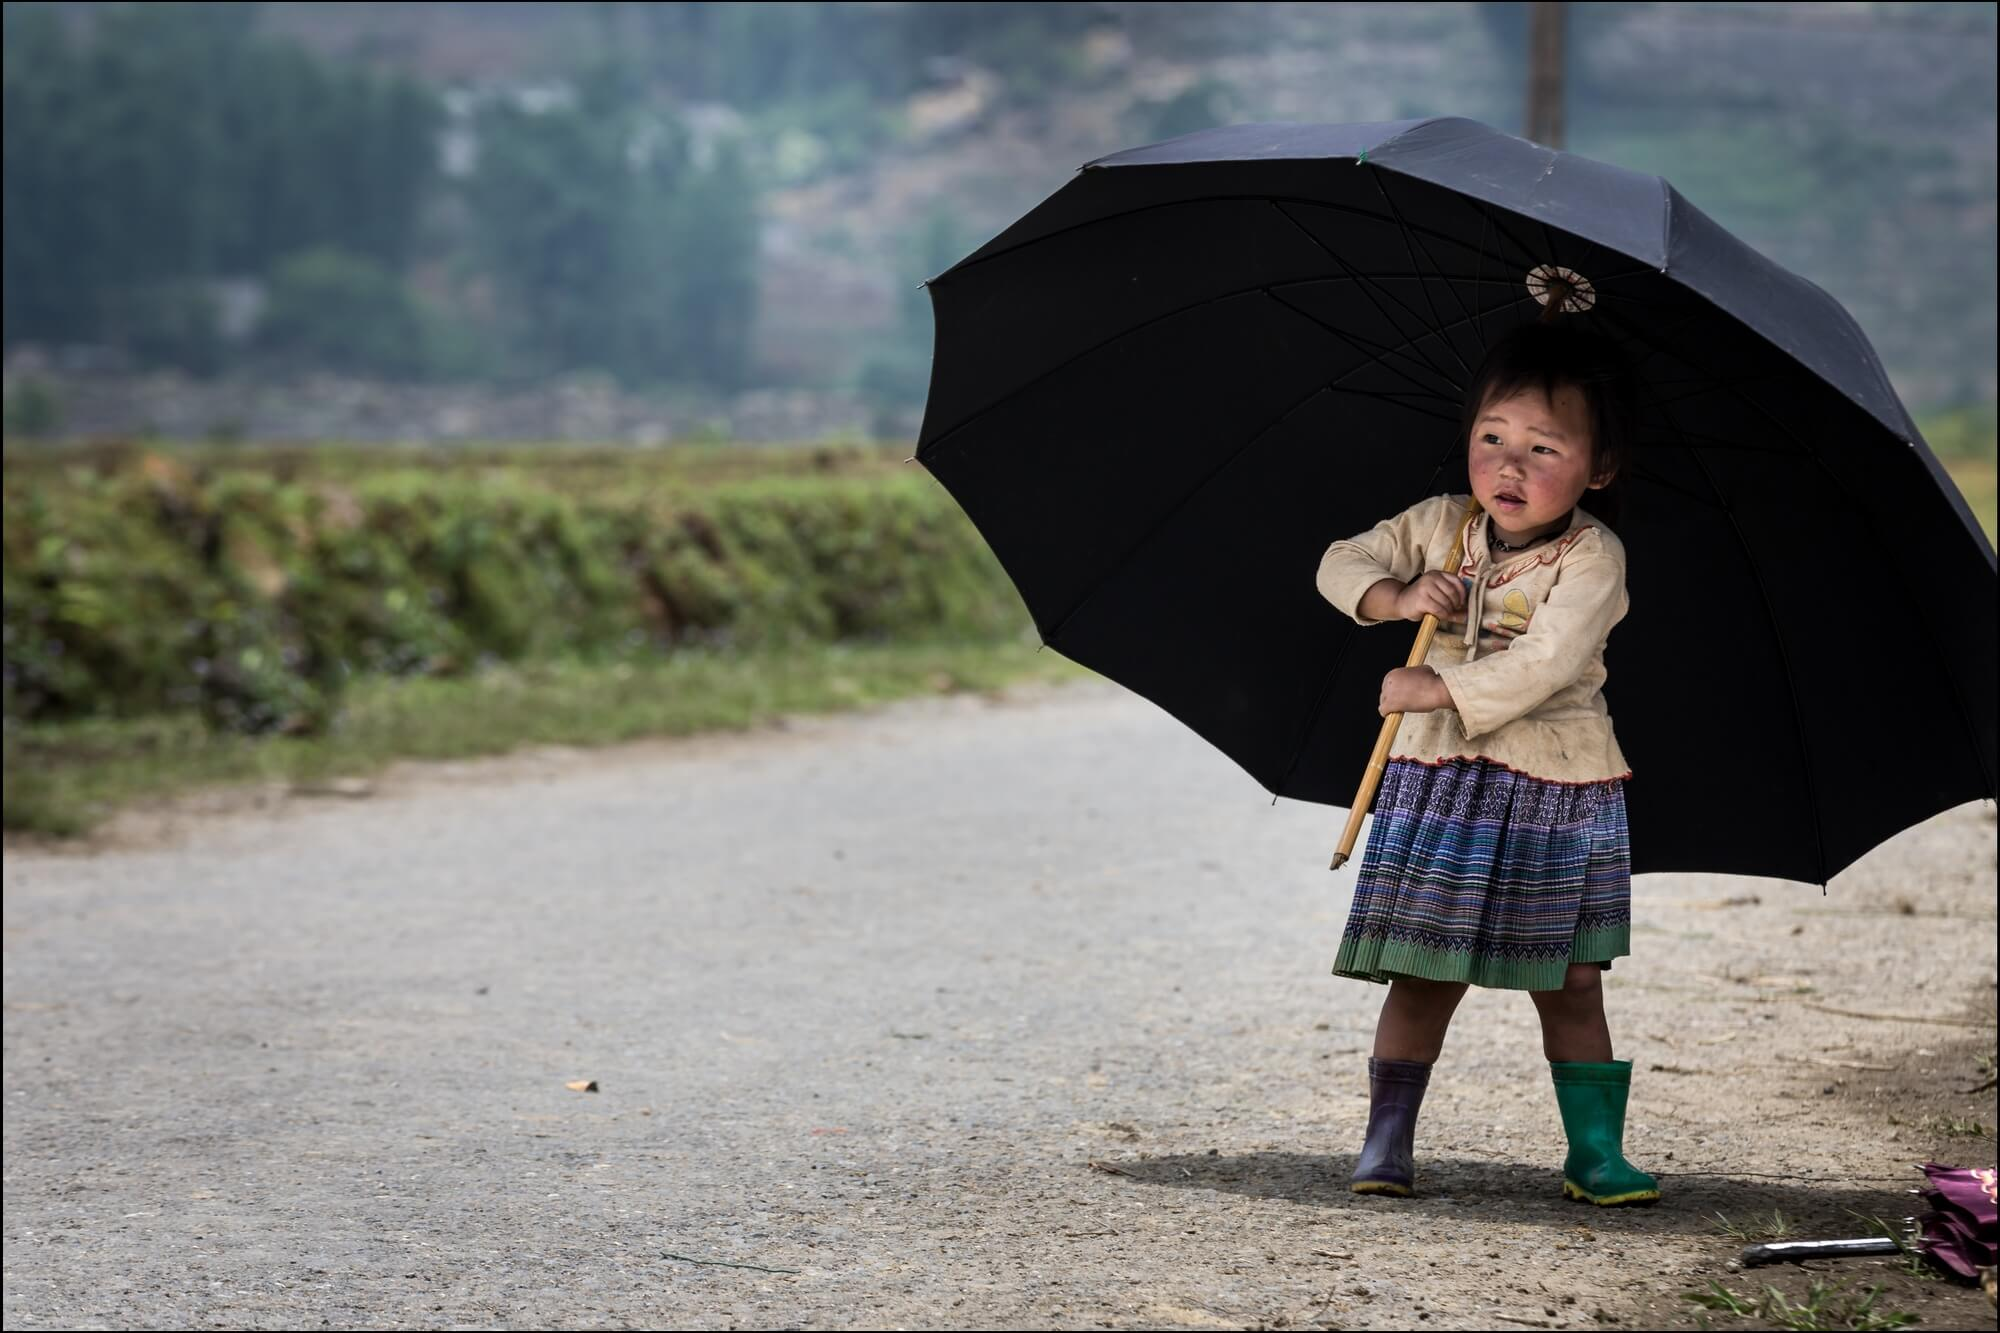 Vietnam Minority Child with black Umbrella